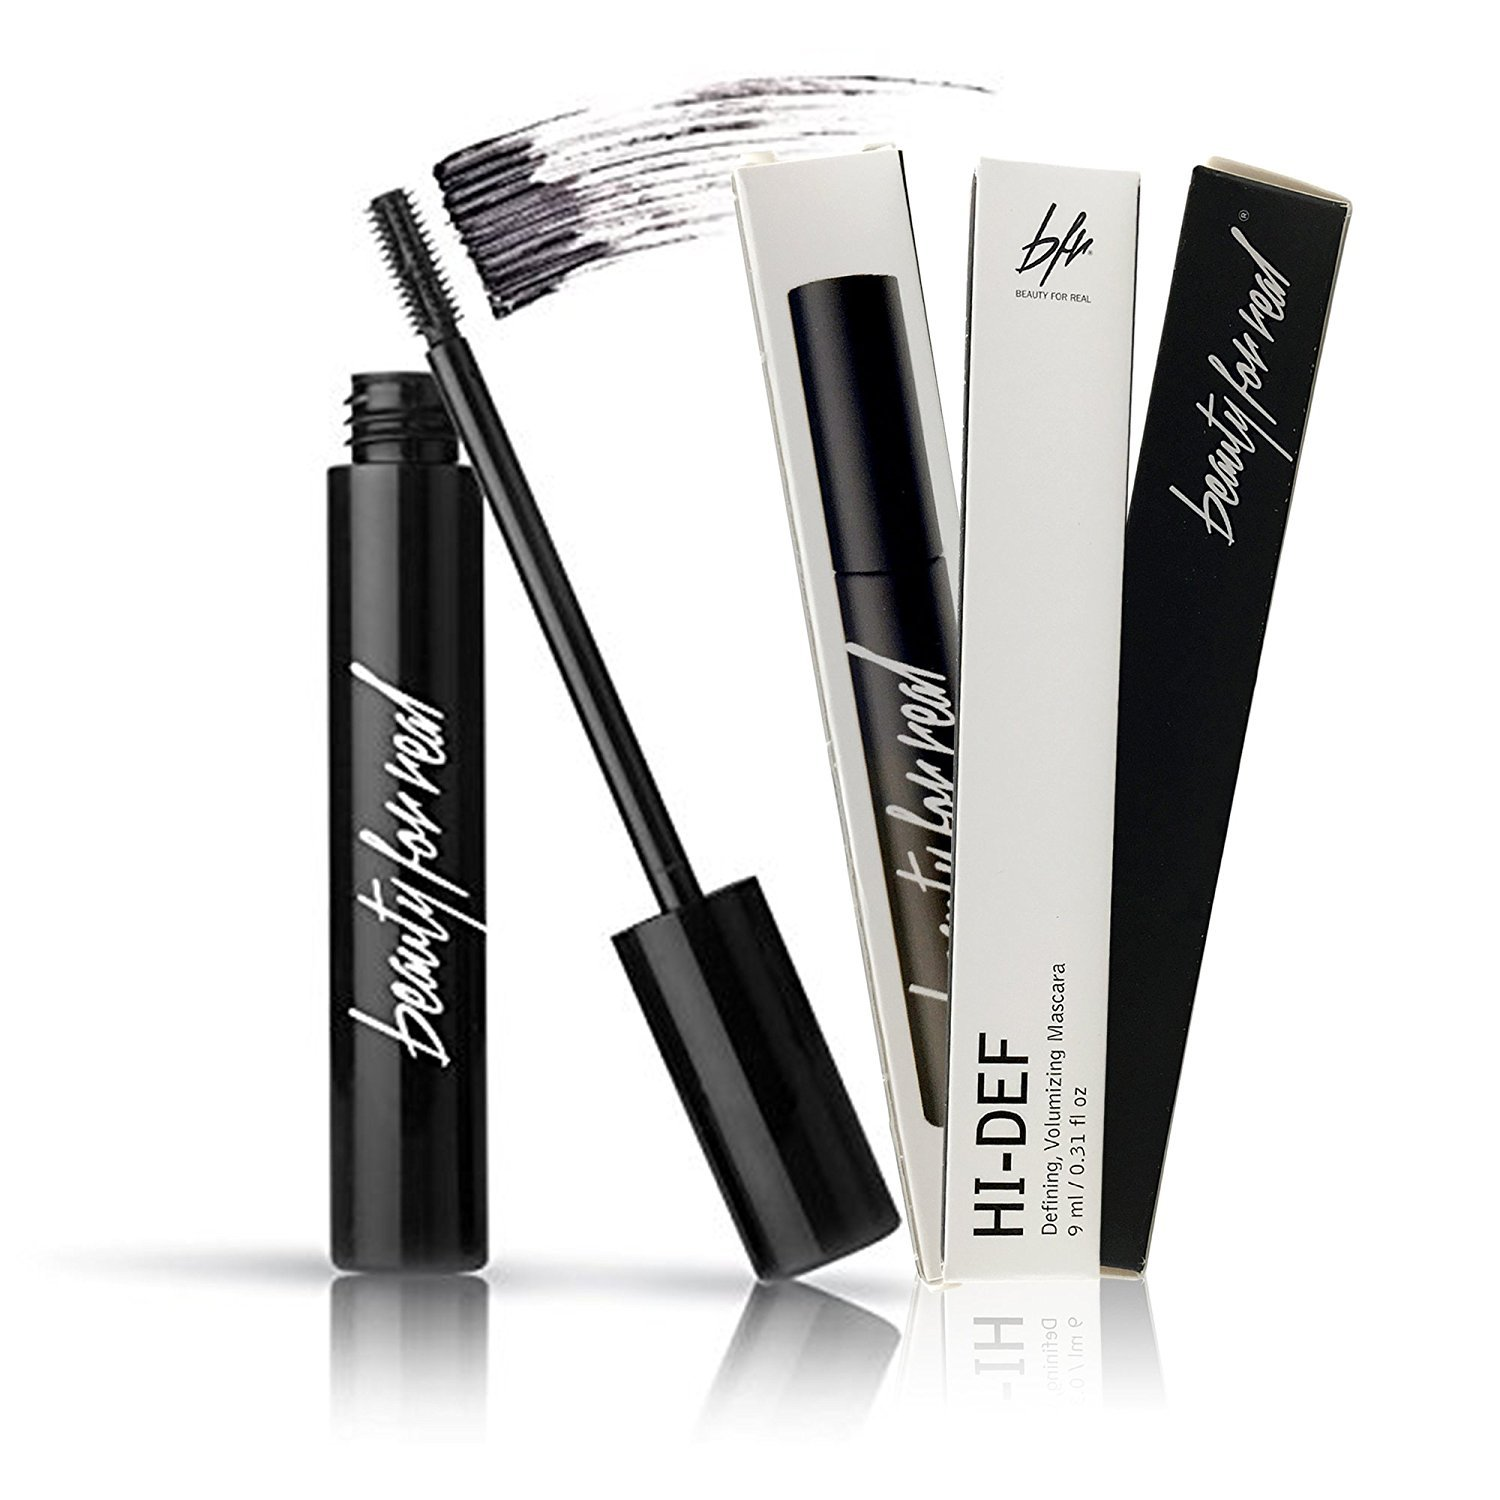 Beauty For Real HI-DEF Defining, Volumizing Mascara, Just Black, 9ml (1 Pack) (3 Pack) 25571